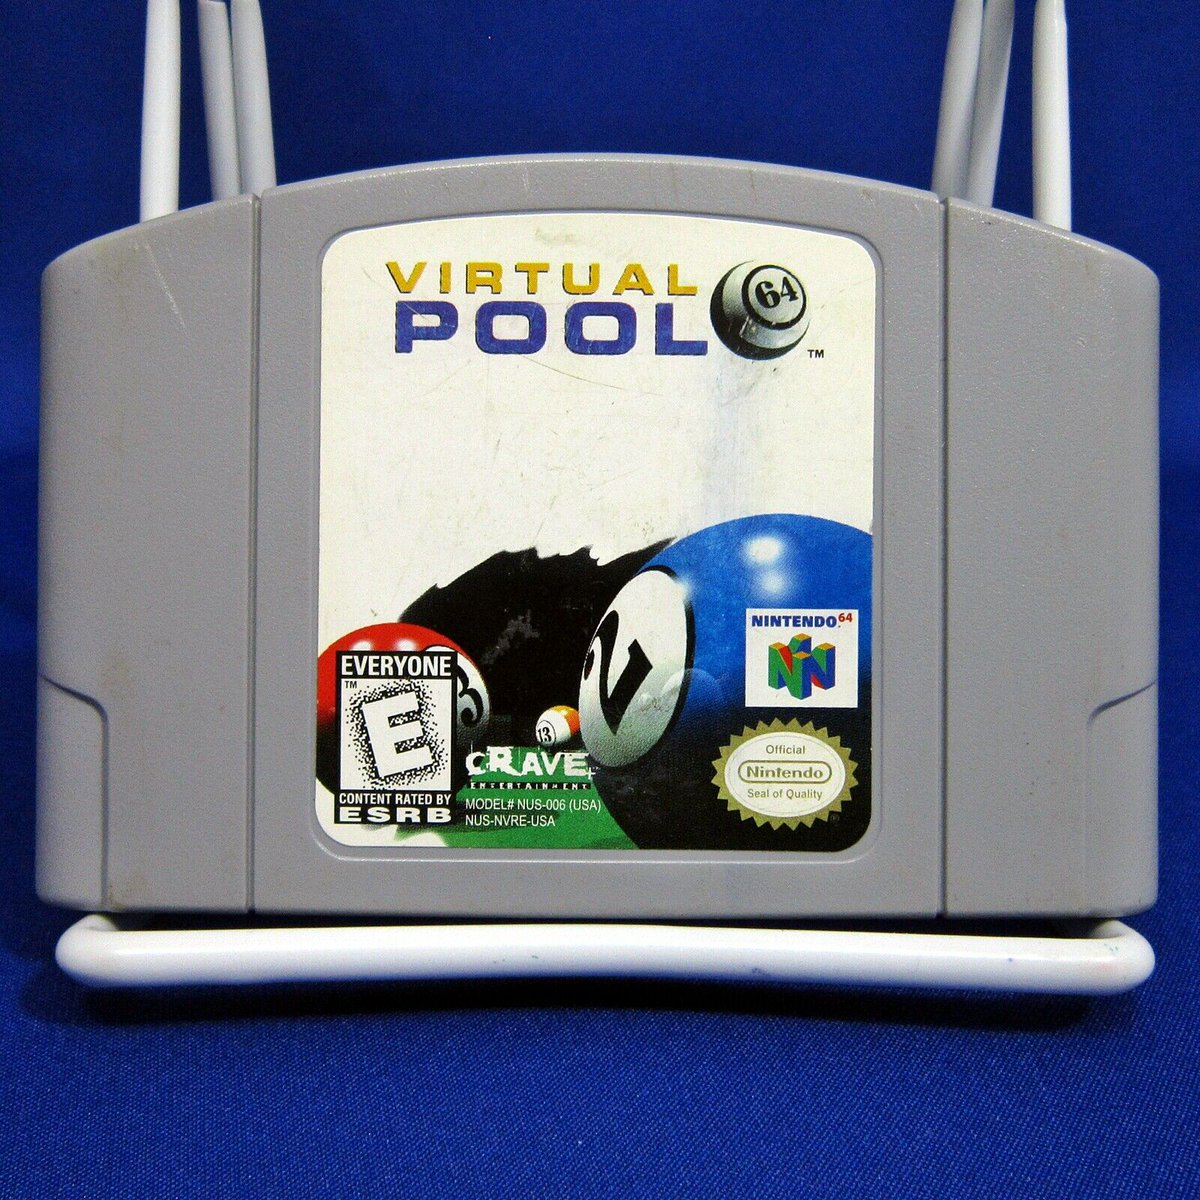 N64 Virtual Pool 64 Cartridge Only Tested https://www.ebay.ca/itm/223686330659 … #ebay @ebay #N64 #Nintendo64 #VirtualPool #VirtualPool64 #Billyards #pool #poolballs #cartridgeonly #tested #videogames #gamingpic.twitter.com/S7sHmPEmC0